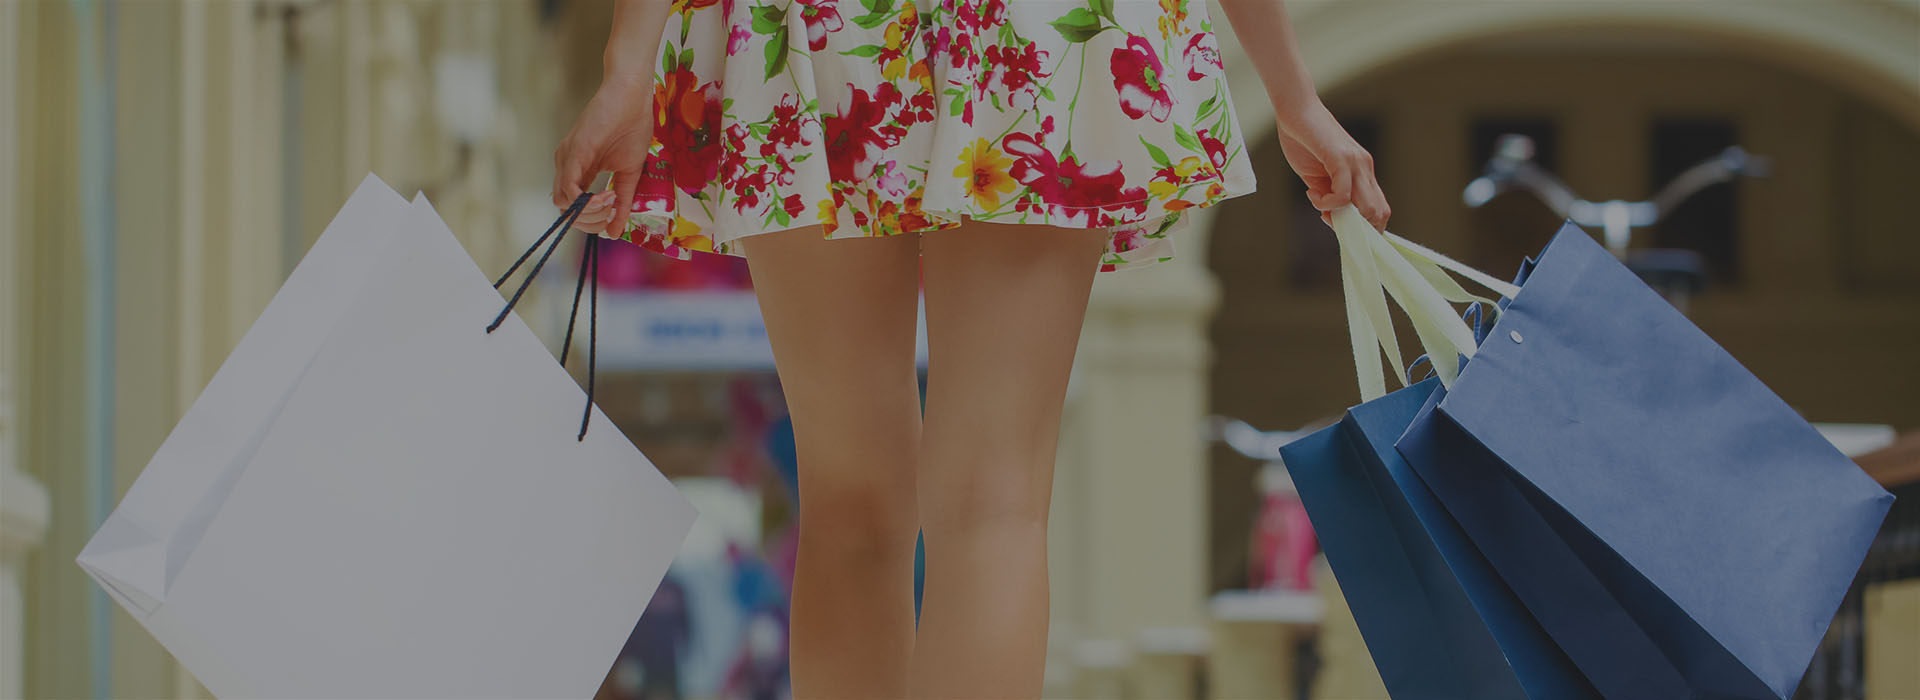 Female with shopping bags walking through the mall.